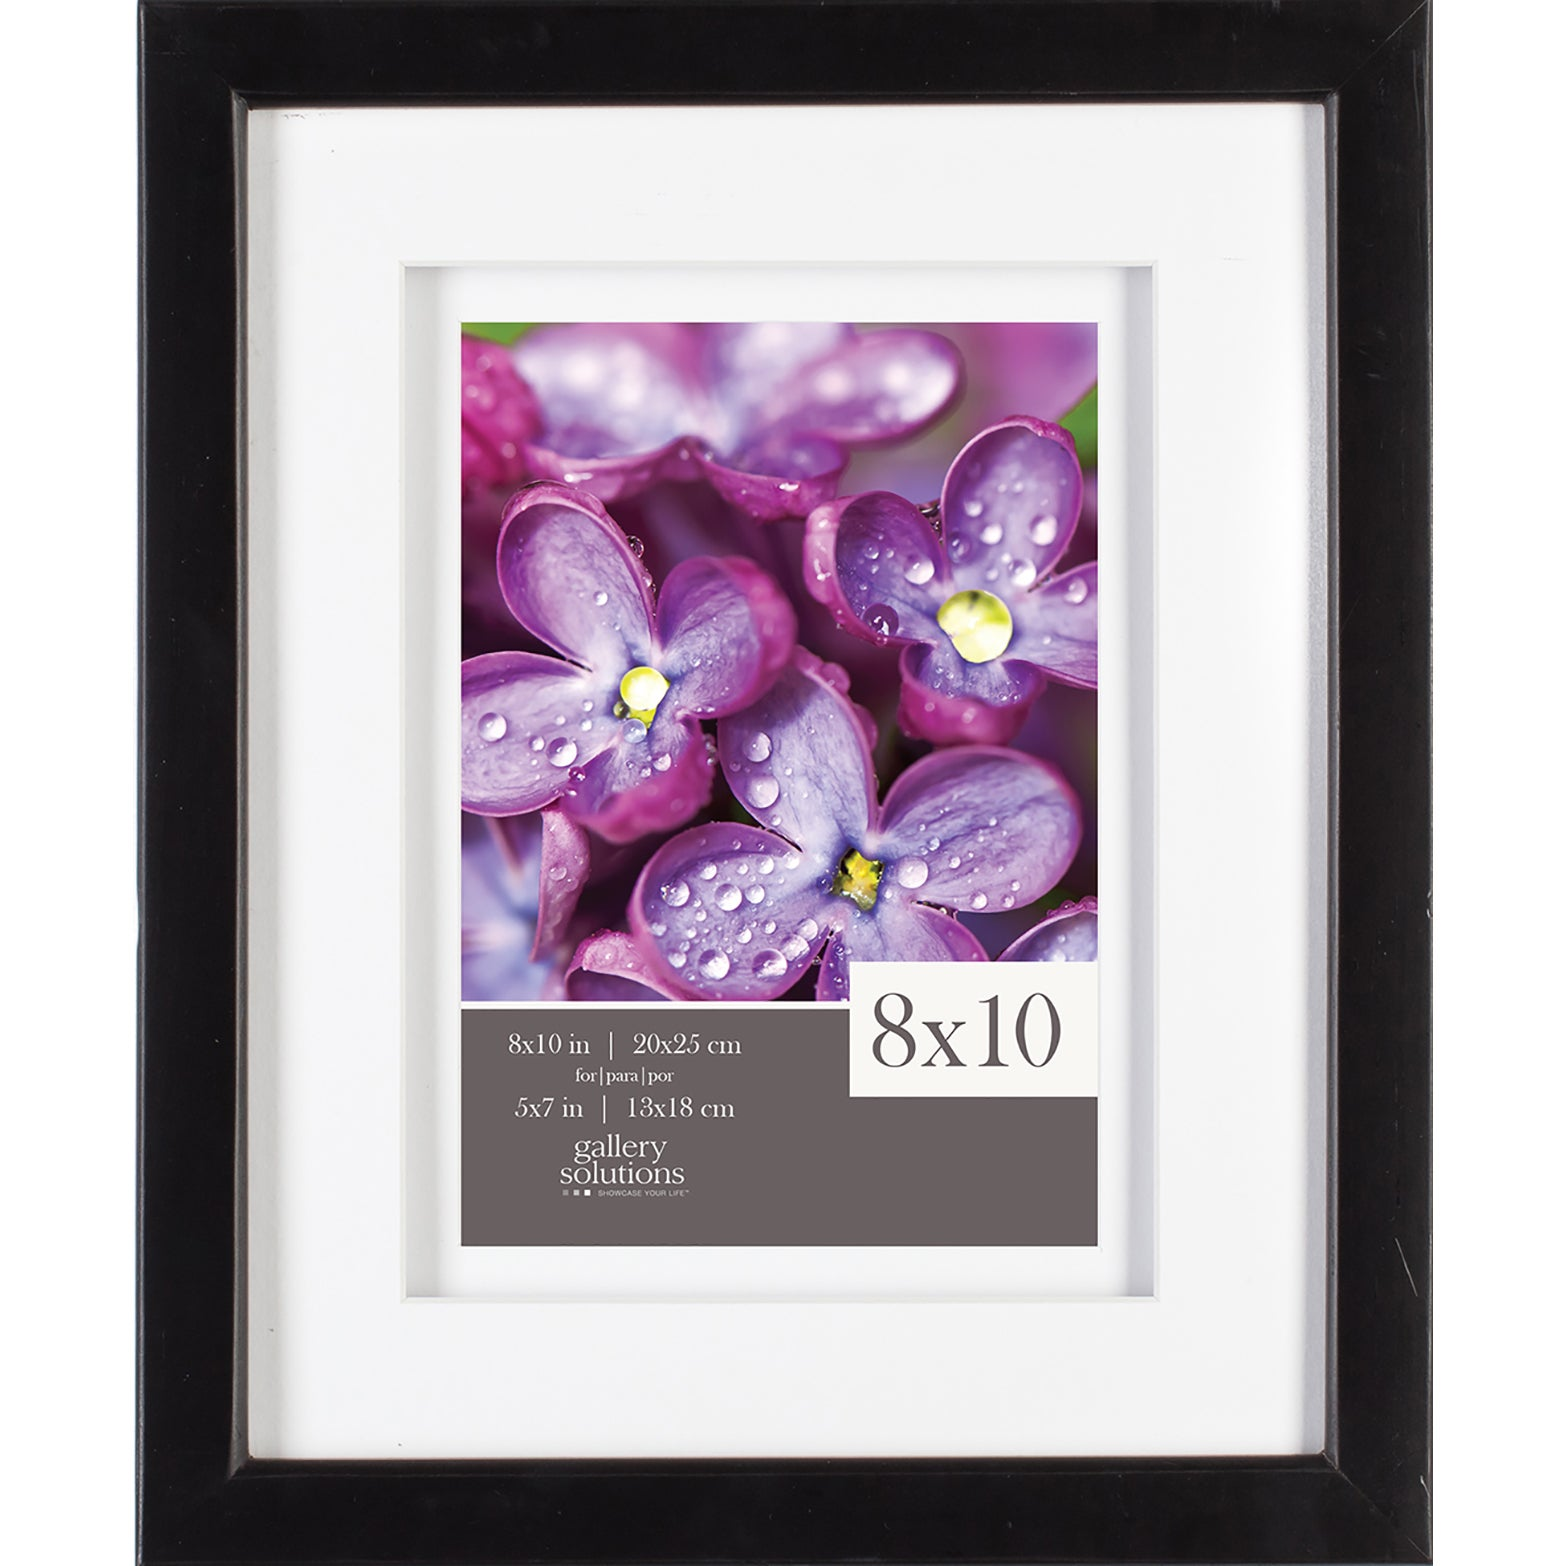 Gallery Solutions Black Wood Frame with Airfloat Mat (8x1...